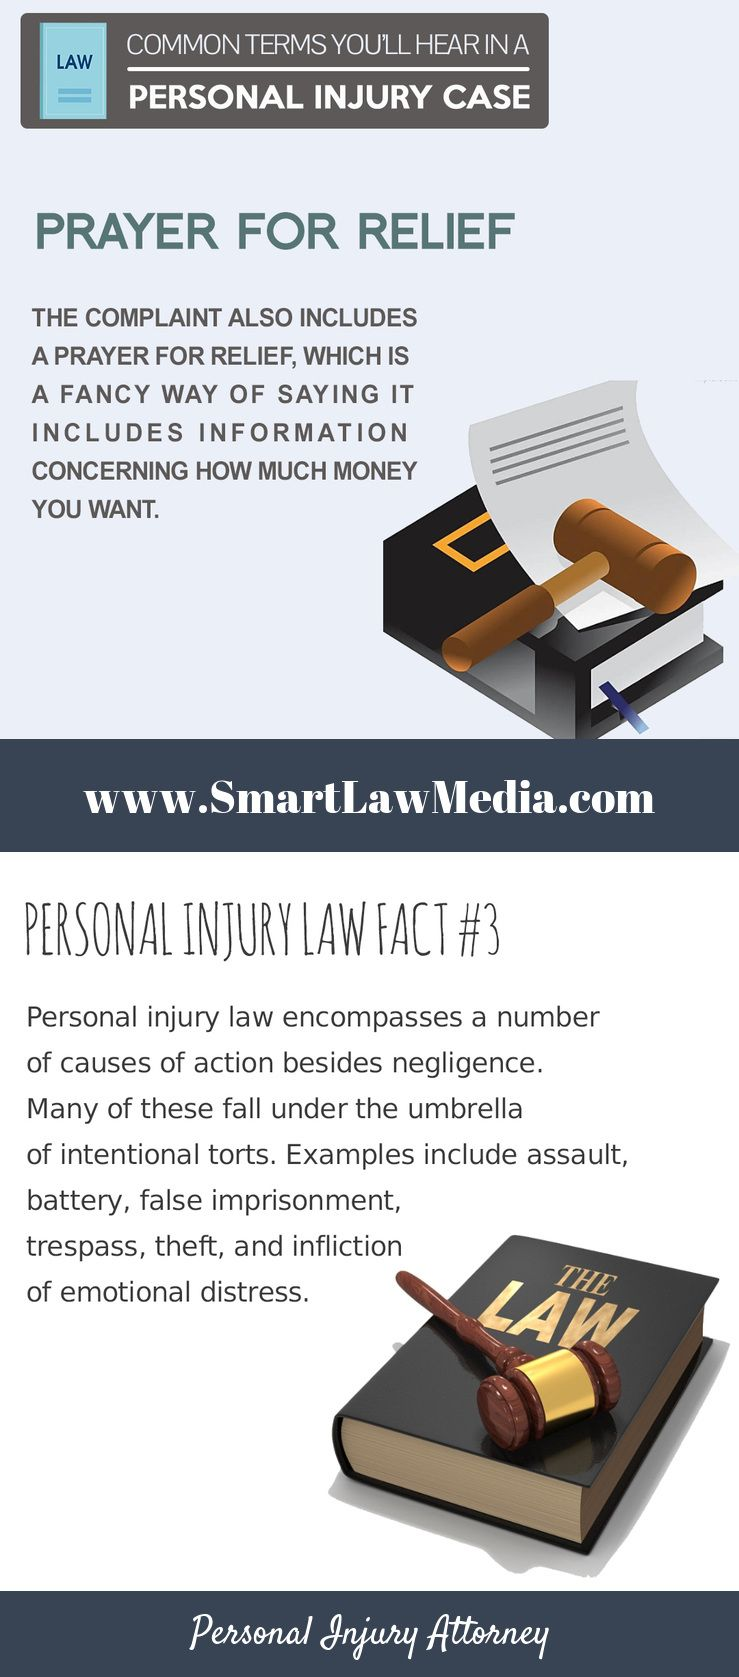 Attention Personal Injury Firms Helping Law Firms To Fast Track Their Law Firm Growth With The A In 2020 Personal Injury Attorney Personal Injury Law Injury Attorney